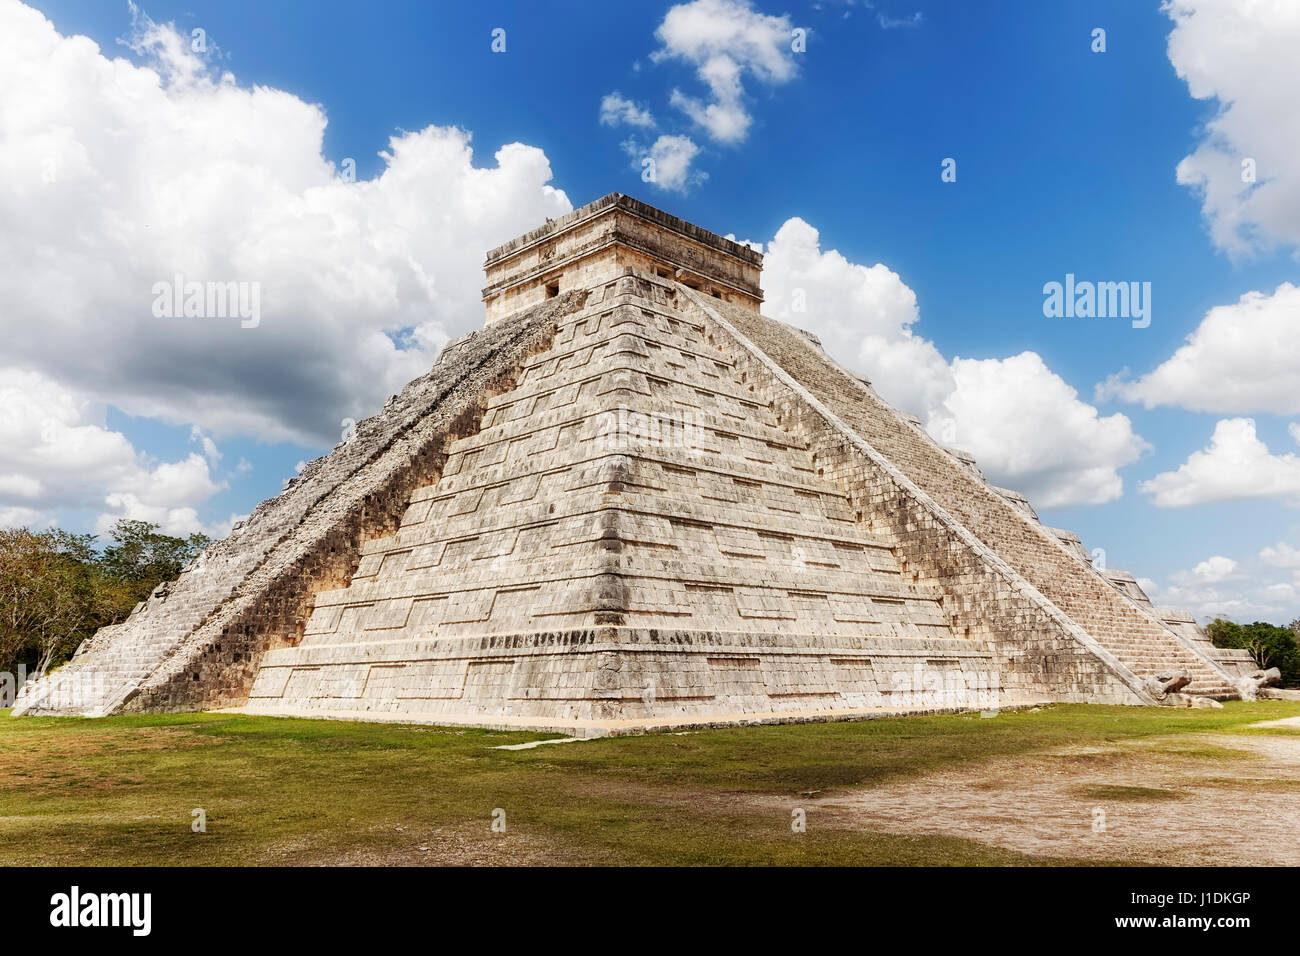 In the ancient Mayan site known as  Chechen Itza, under a bright blue sky with large scattered clouds stand El Castillo, - Stock Image